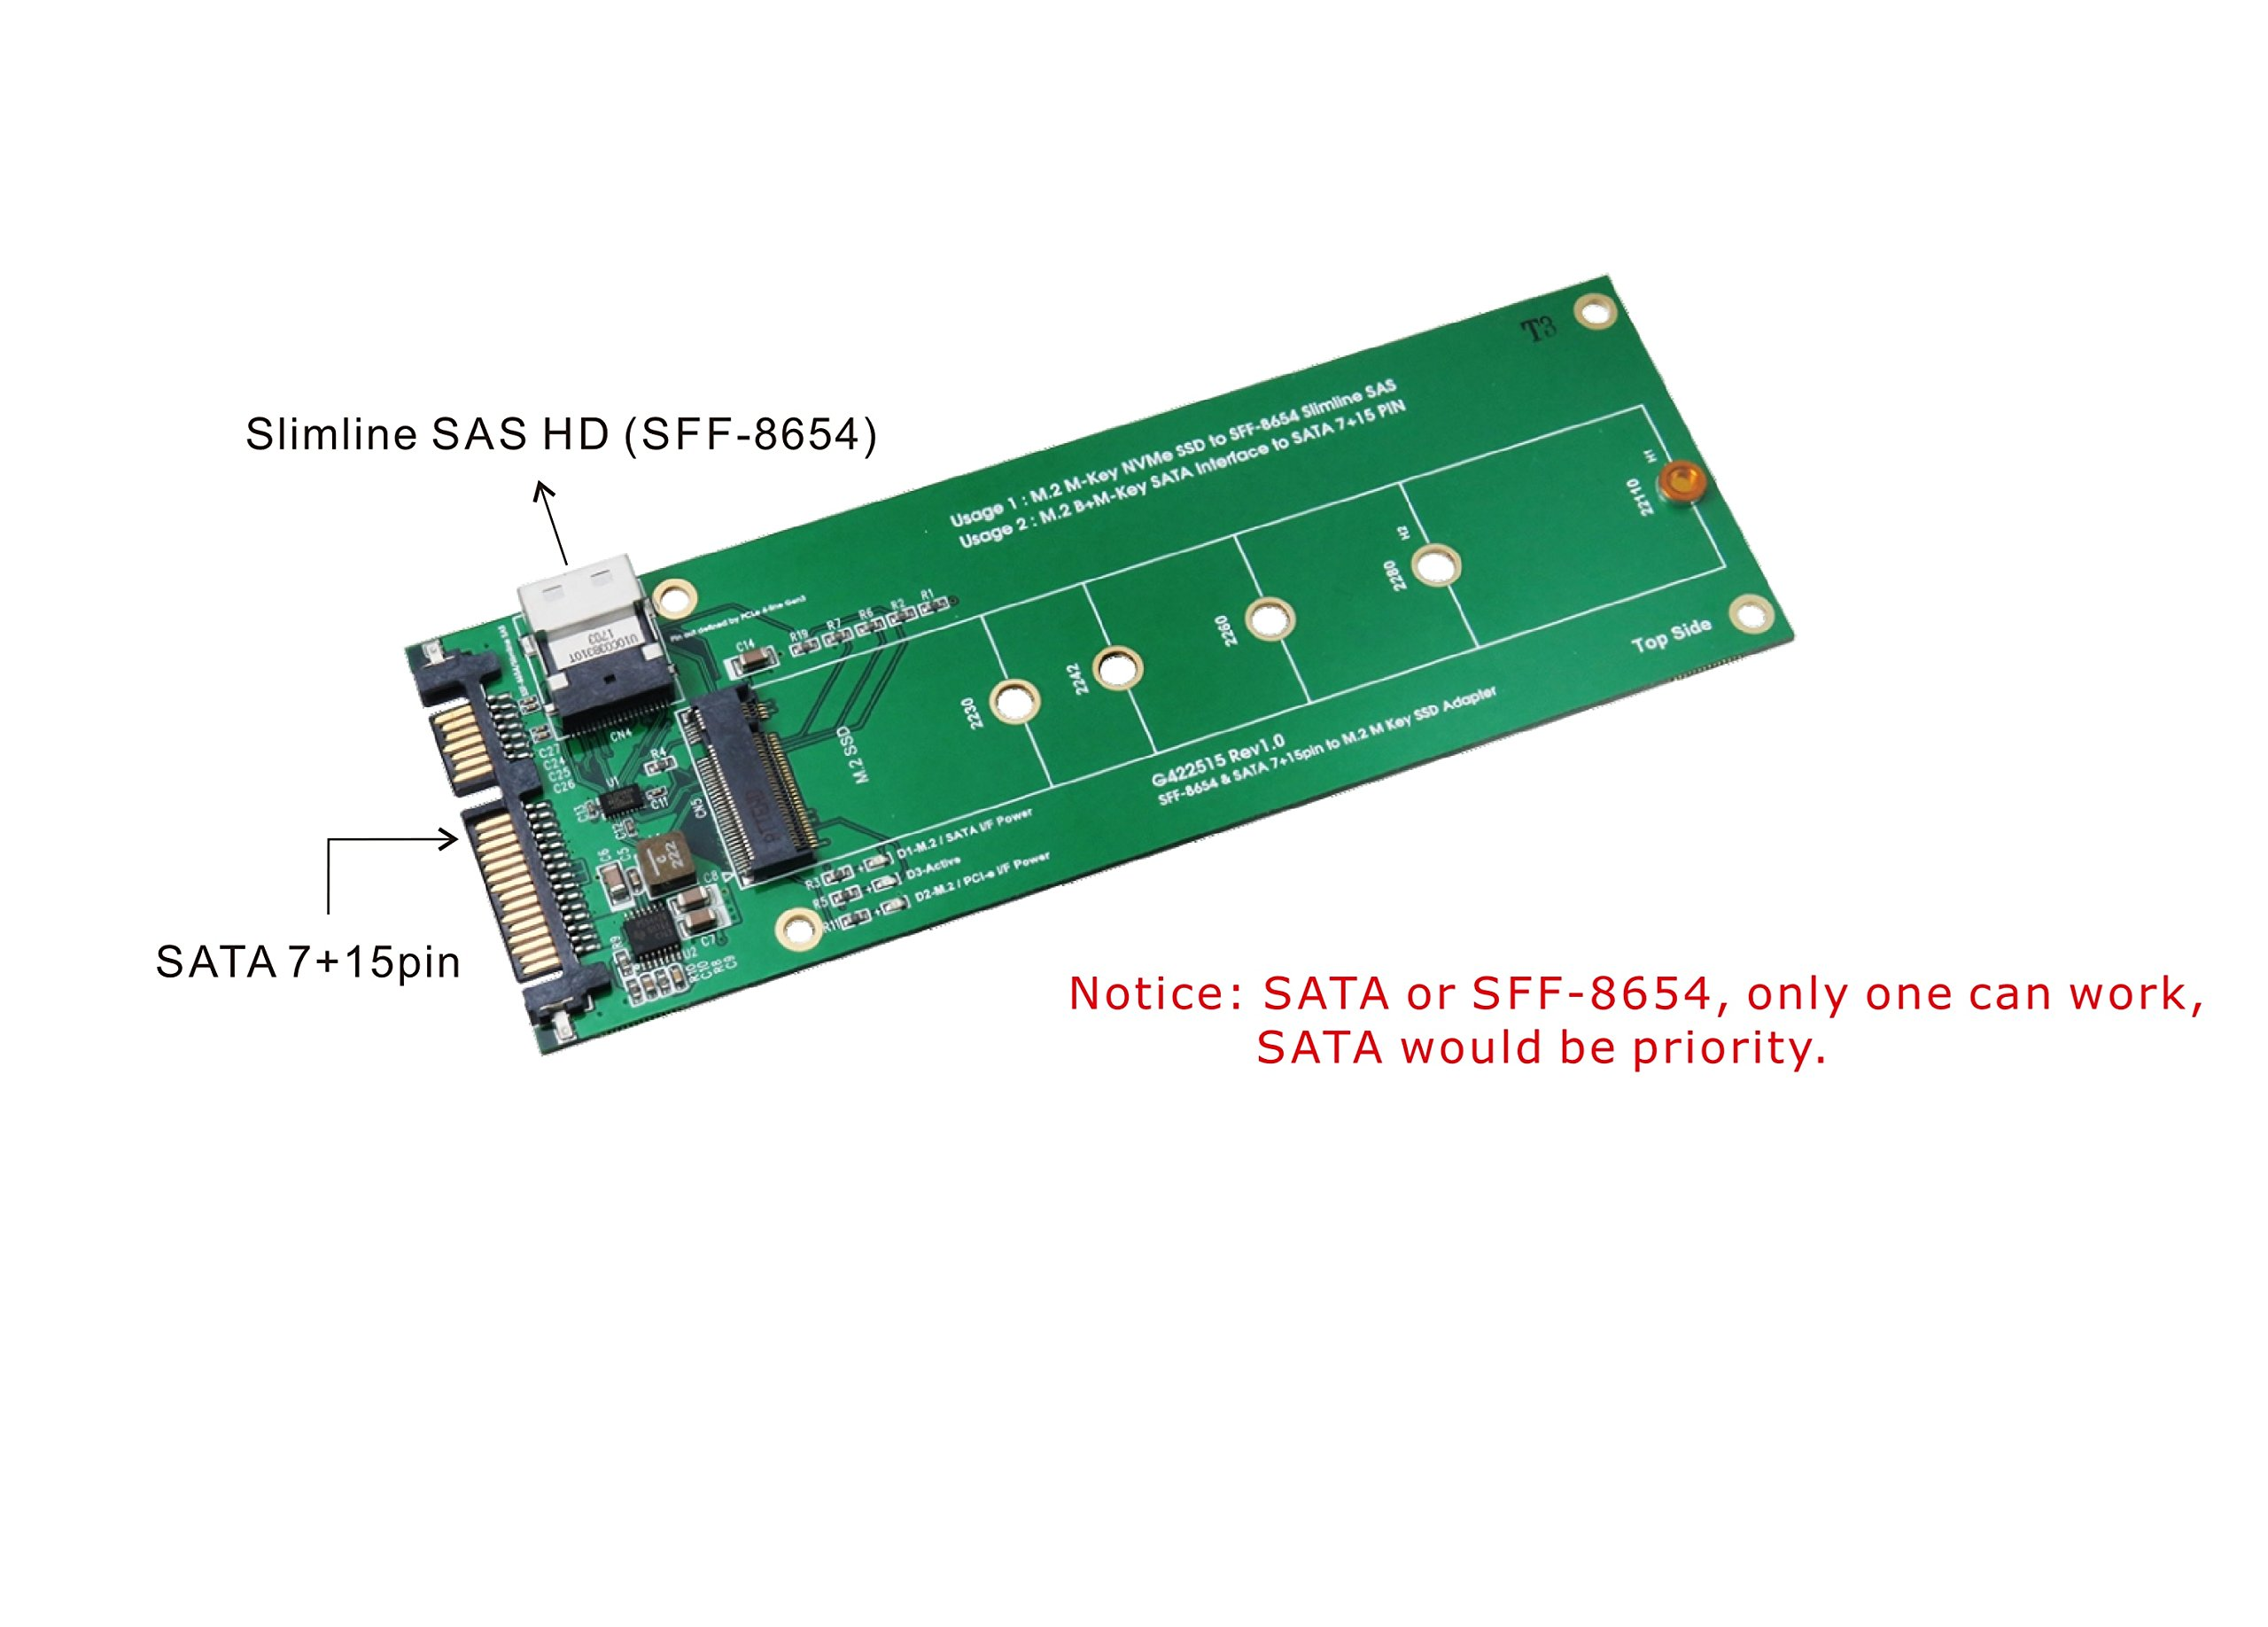 Slimline SAS (SFF-8654) and SATA to M.2 SSD Adapter